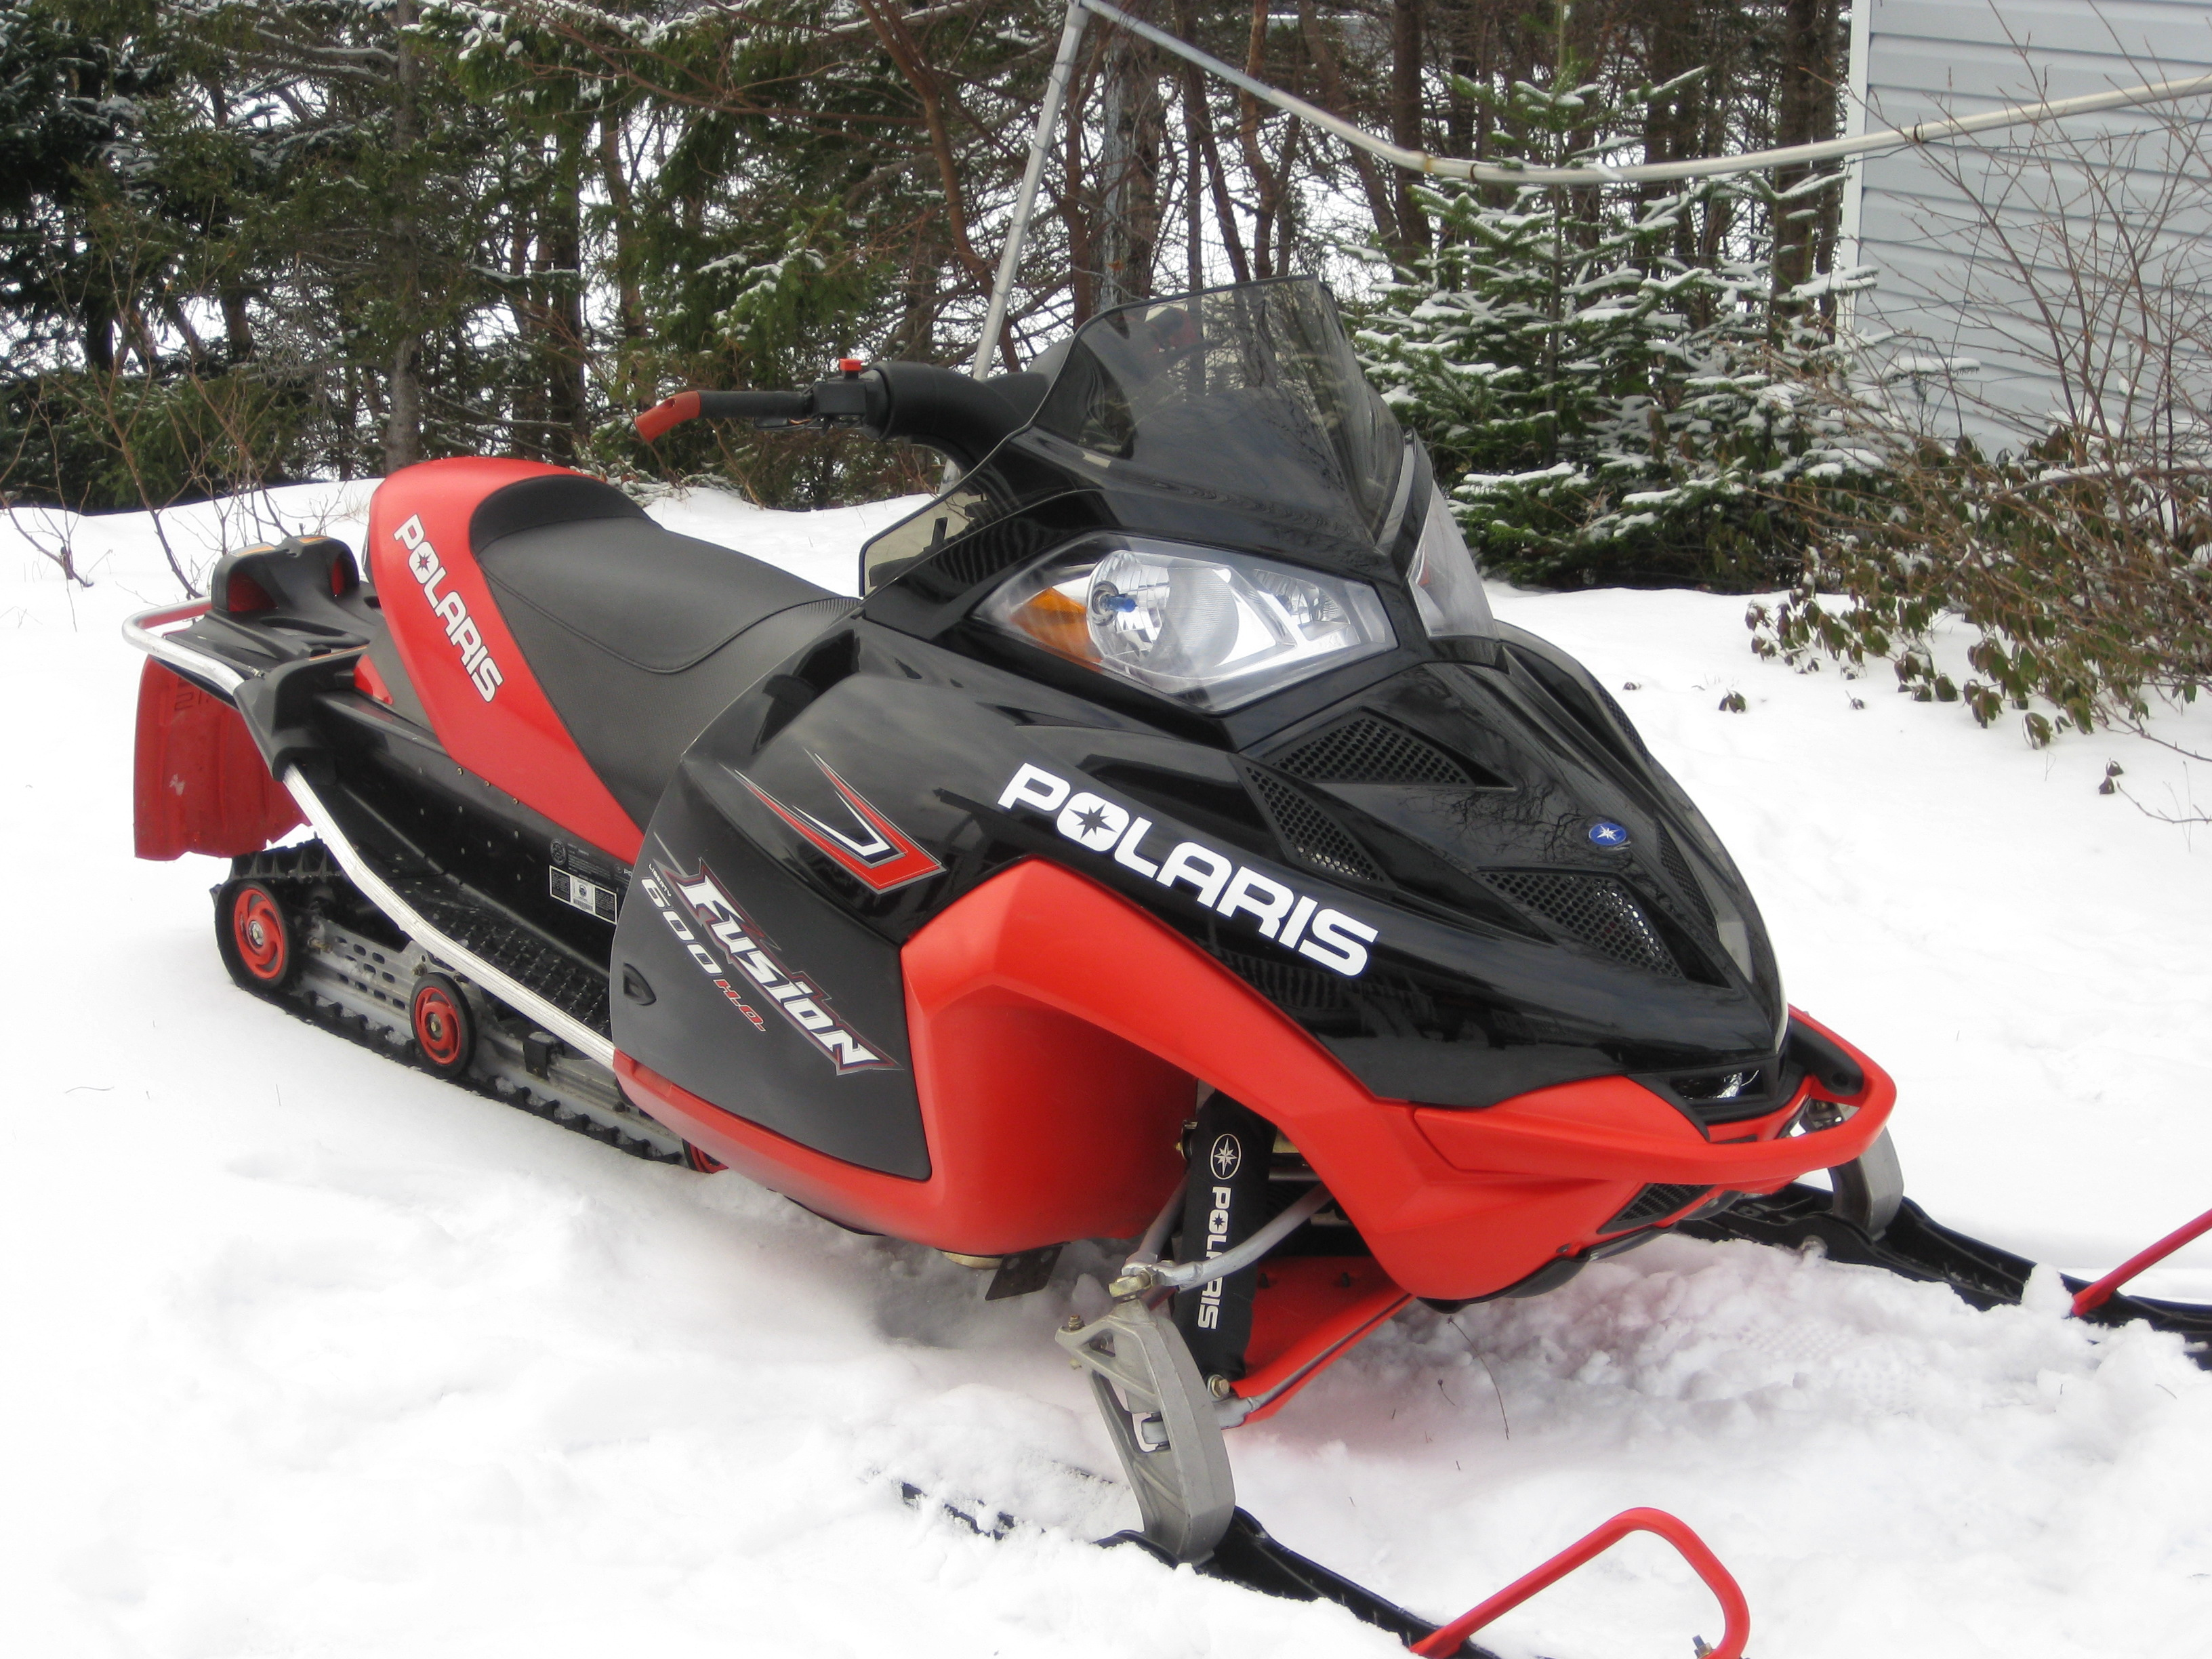 Polaris Side By Side >> 2006 600 fusion/switchback